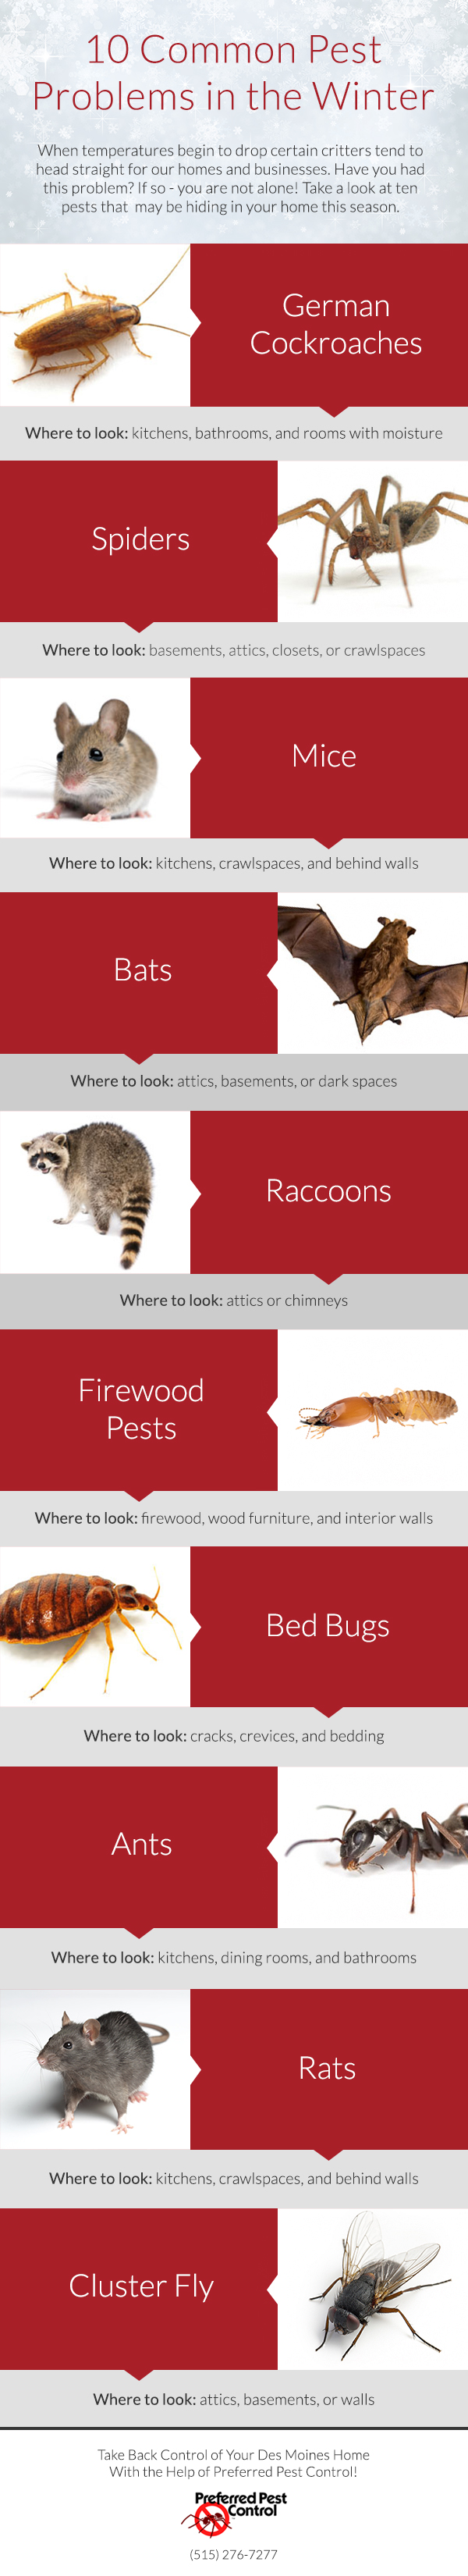 10 Common Pest Problems During the Winter